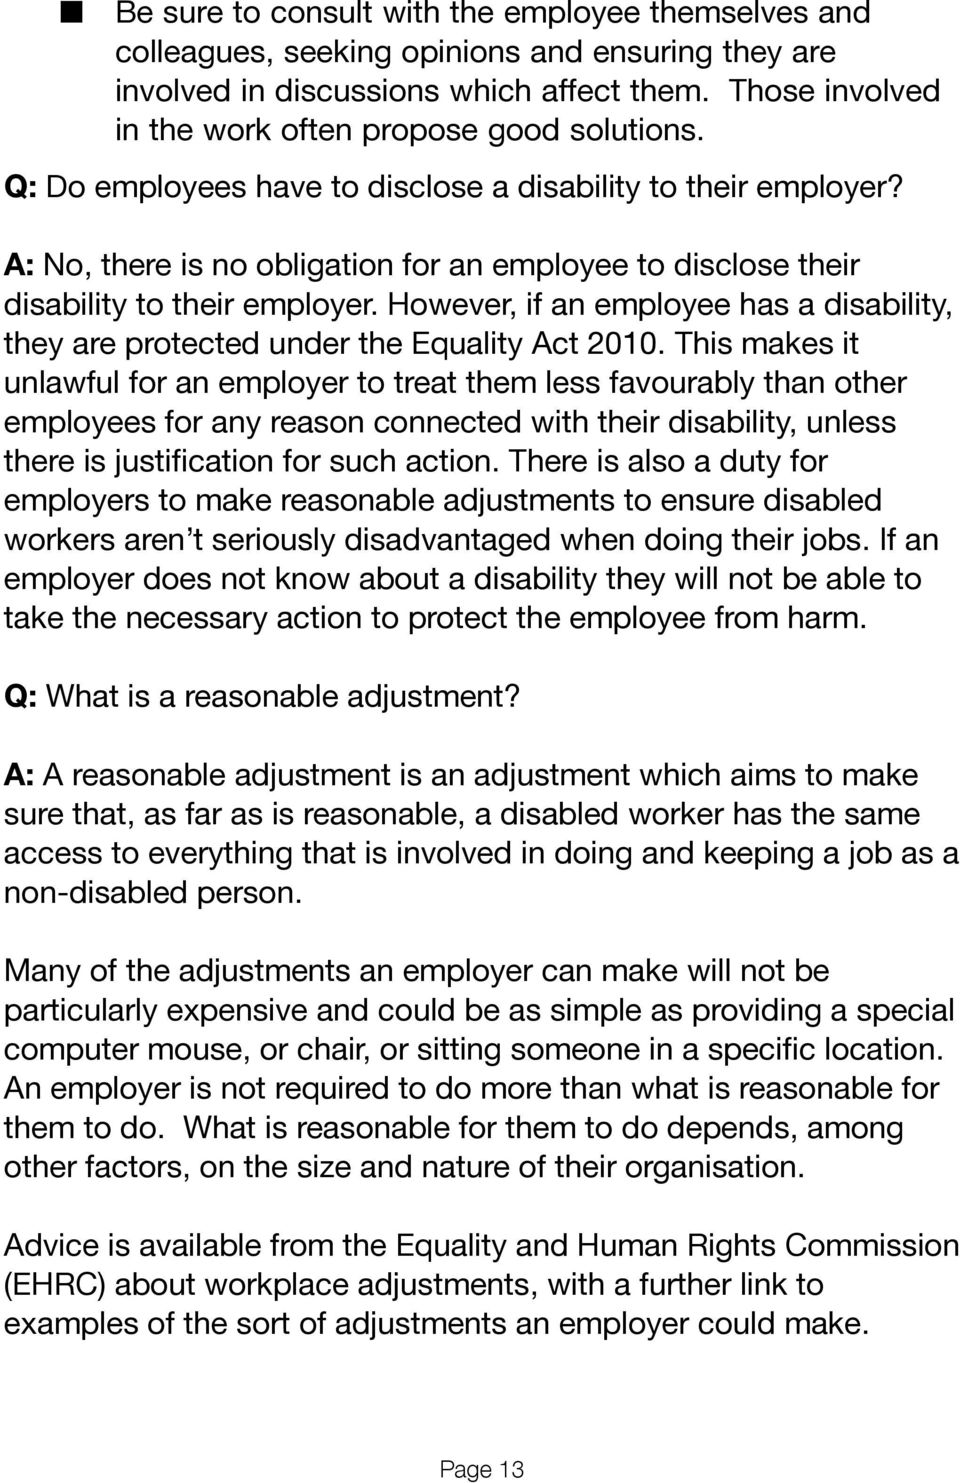 A: No, there is no obligation for an employee to disclose their disability to their employer. However, if an employee has a disability, they are protected under the Equality Act 2010.